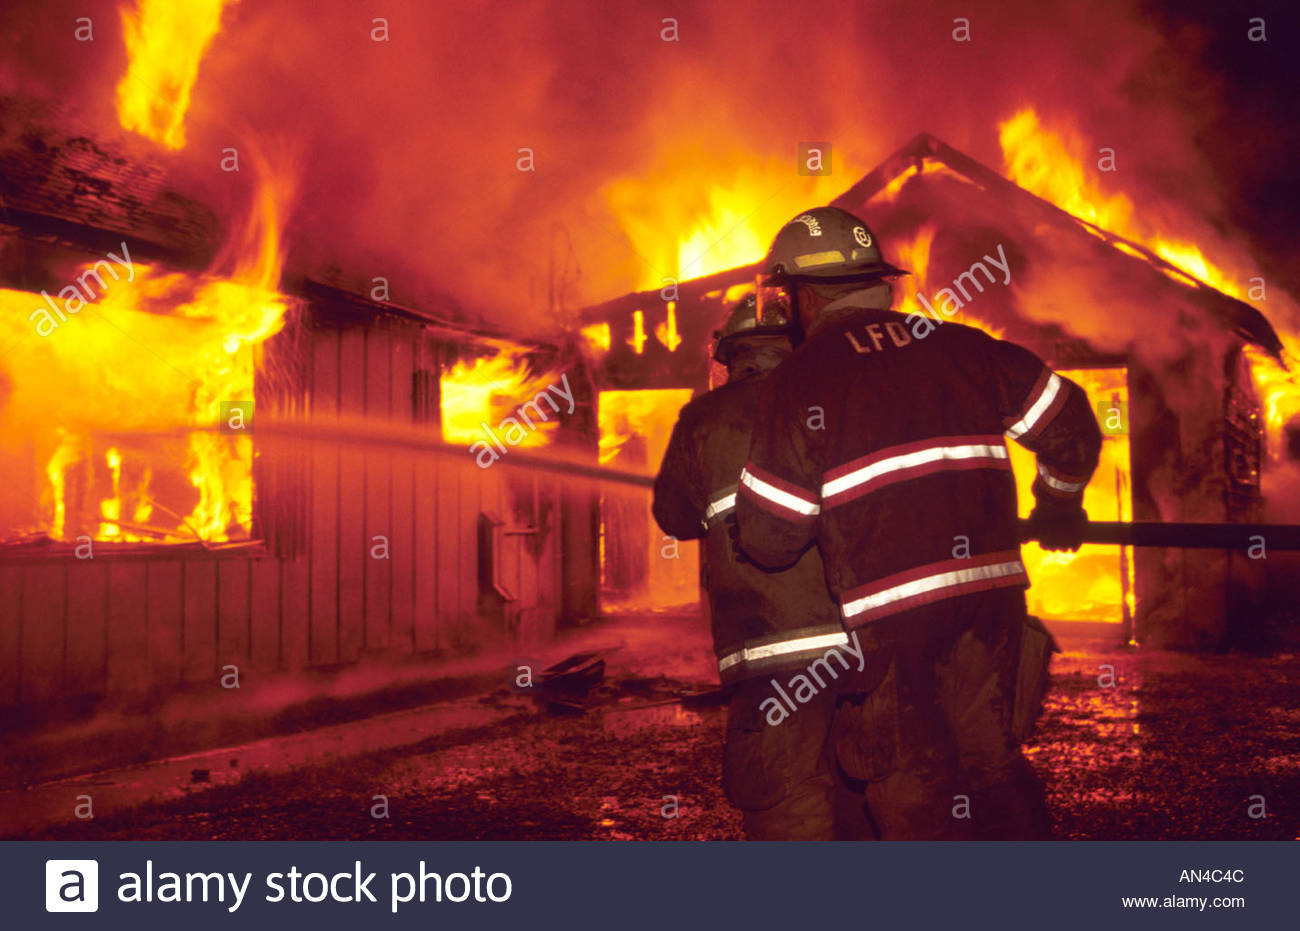 Firefighters attack a spectacular nighttime house fire using a hose line. - Stock Image